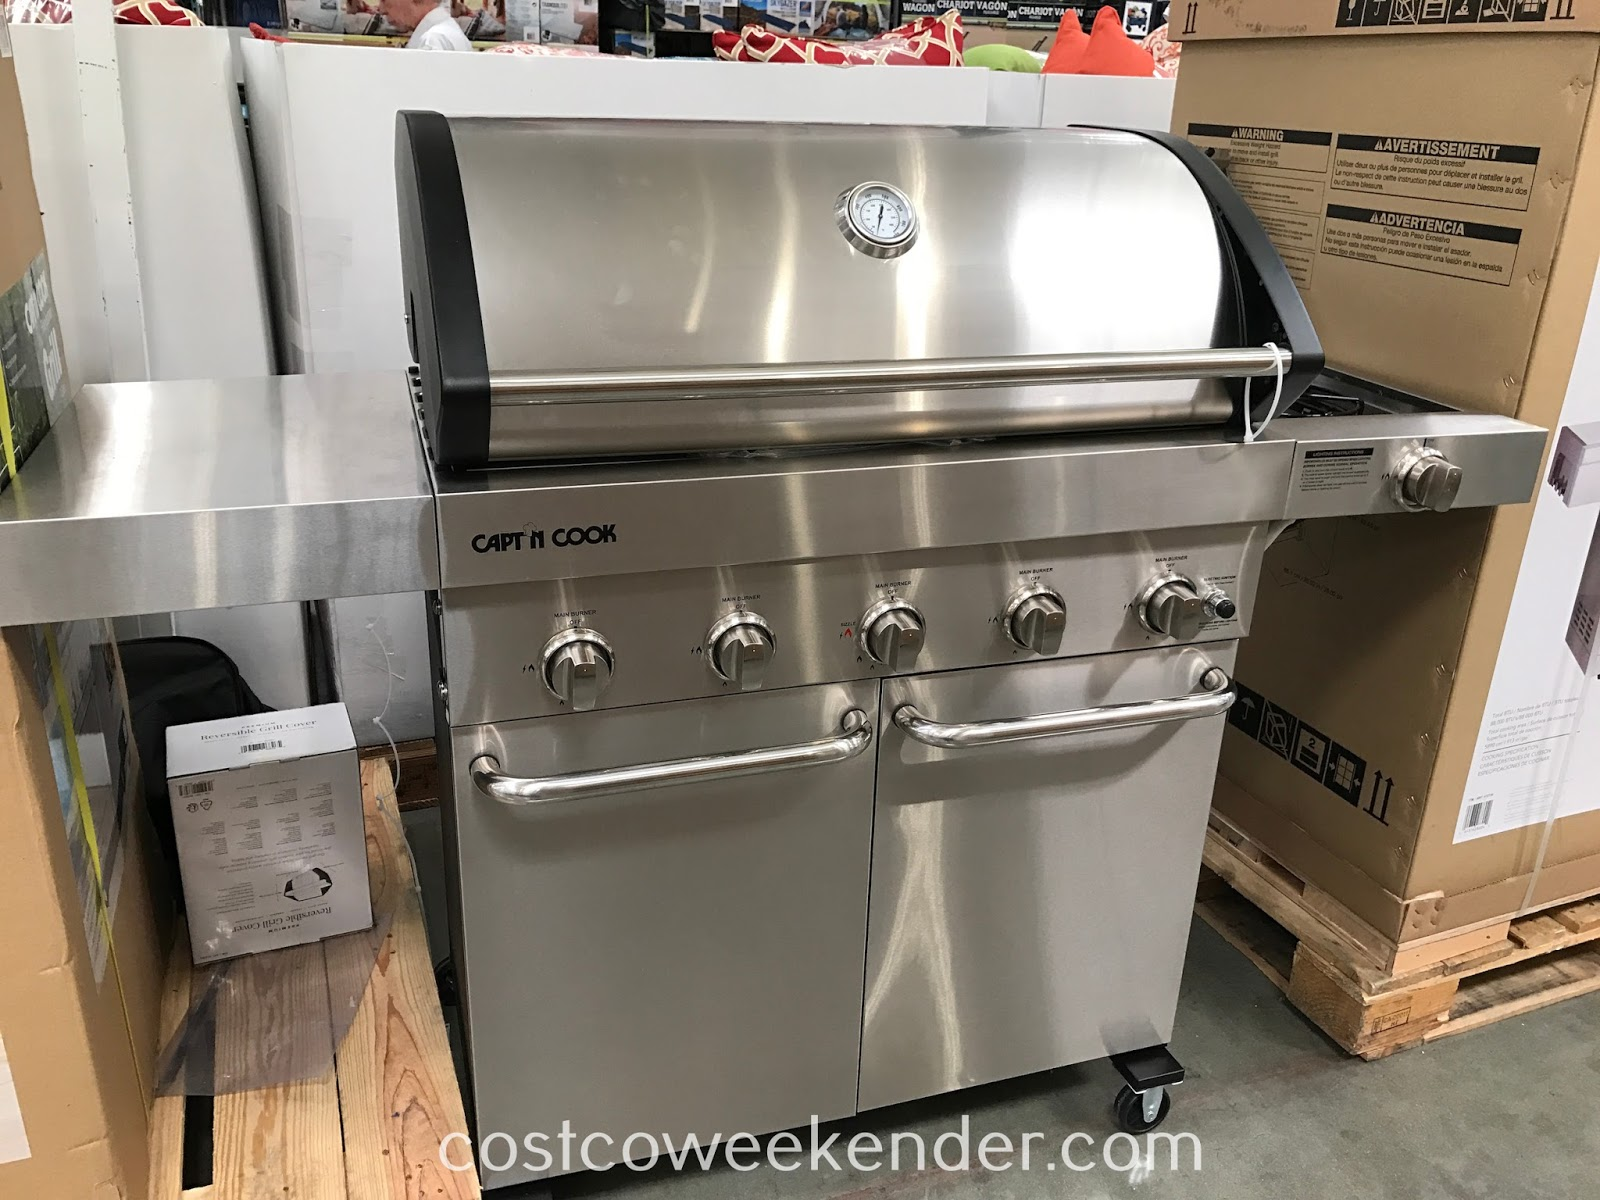 Get the summer grilling season started with the Capt'N Cook 5-Burner LP Gas Grill